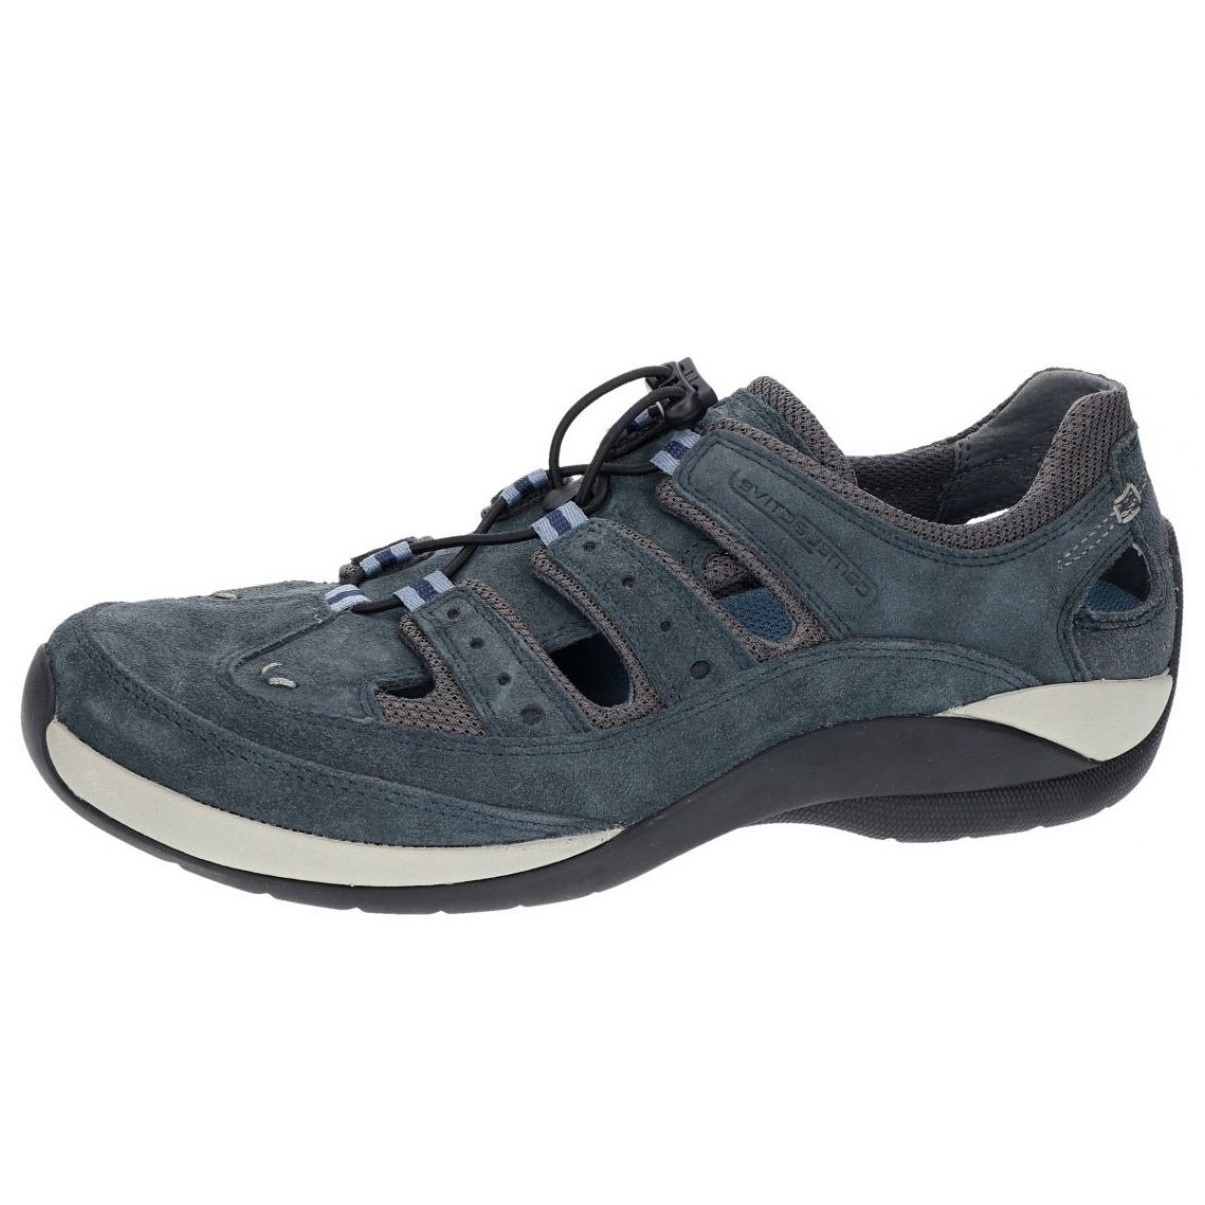 camel active 462.12.30 Moonlight 12 navy/grey